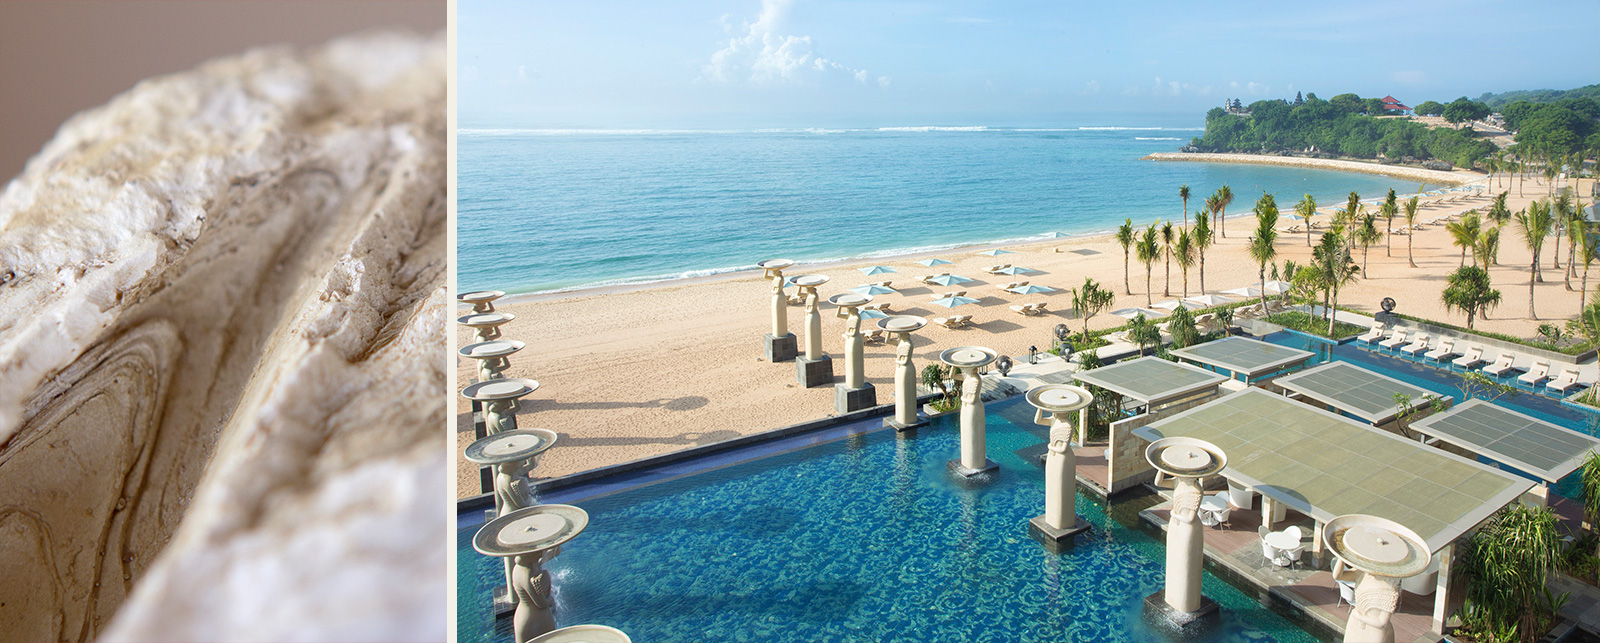 Luxurious All Suite Resort In Bali The Mulia Bali